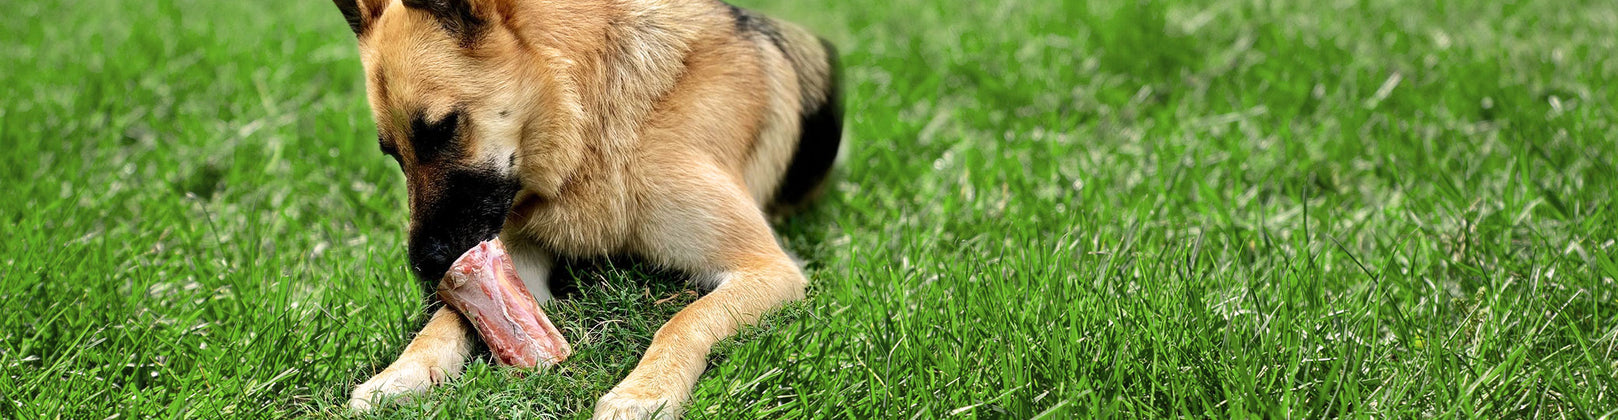 Dog Bone Cheatsheet: The Serious Differences Between the Types of Dog Bones